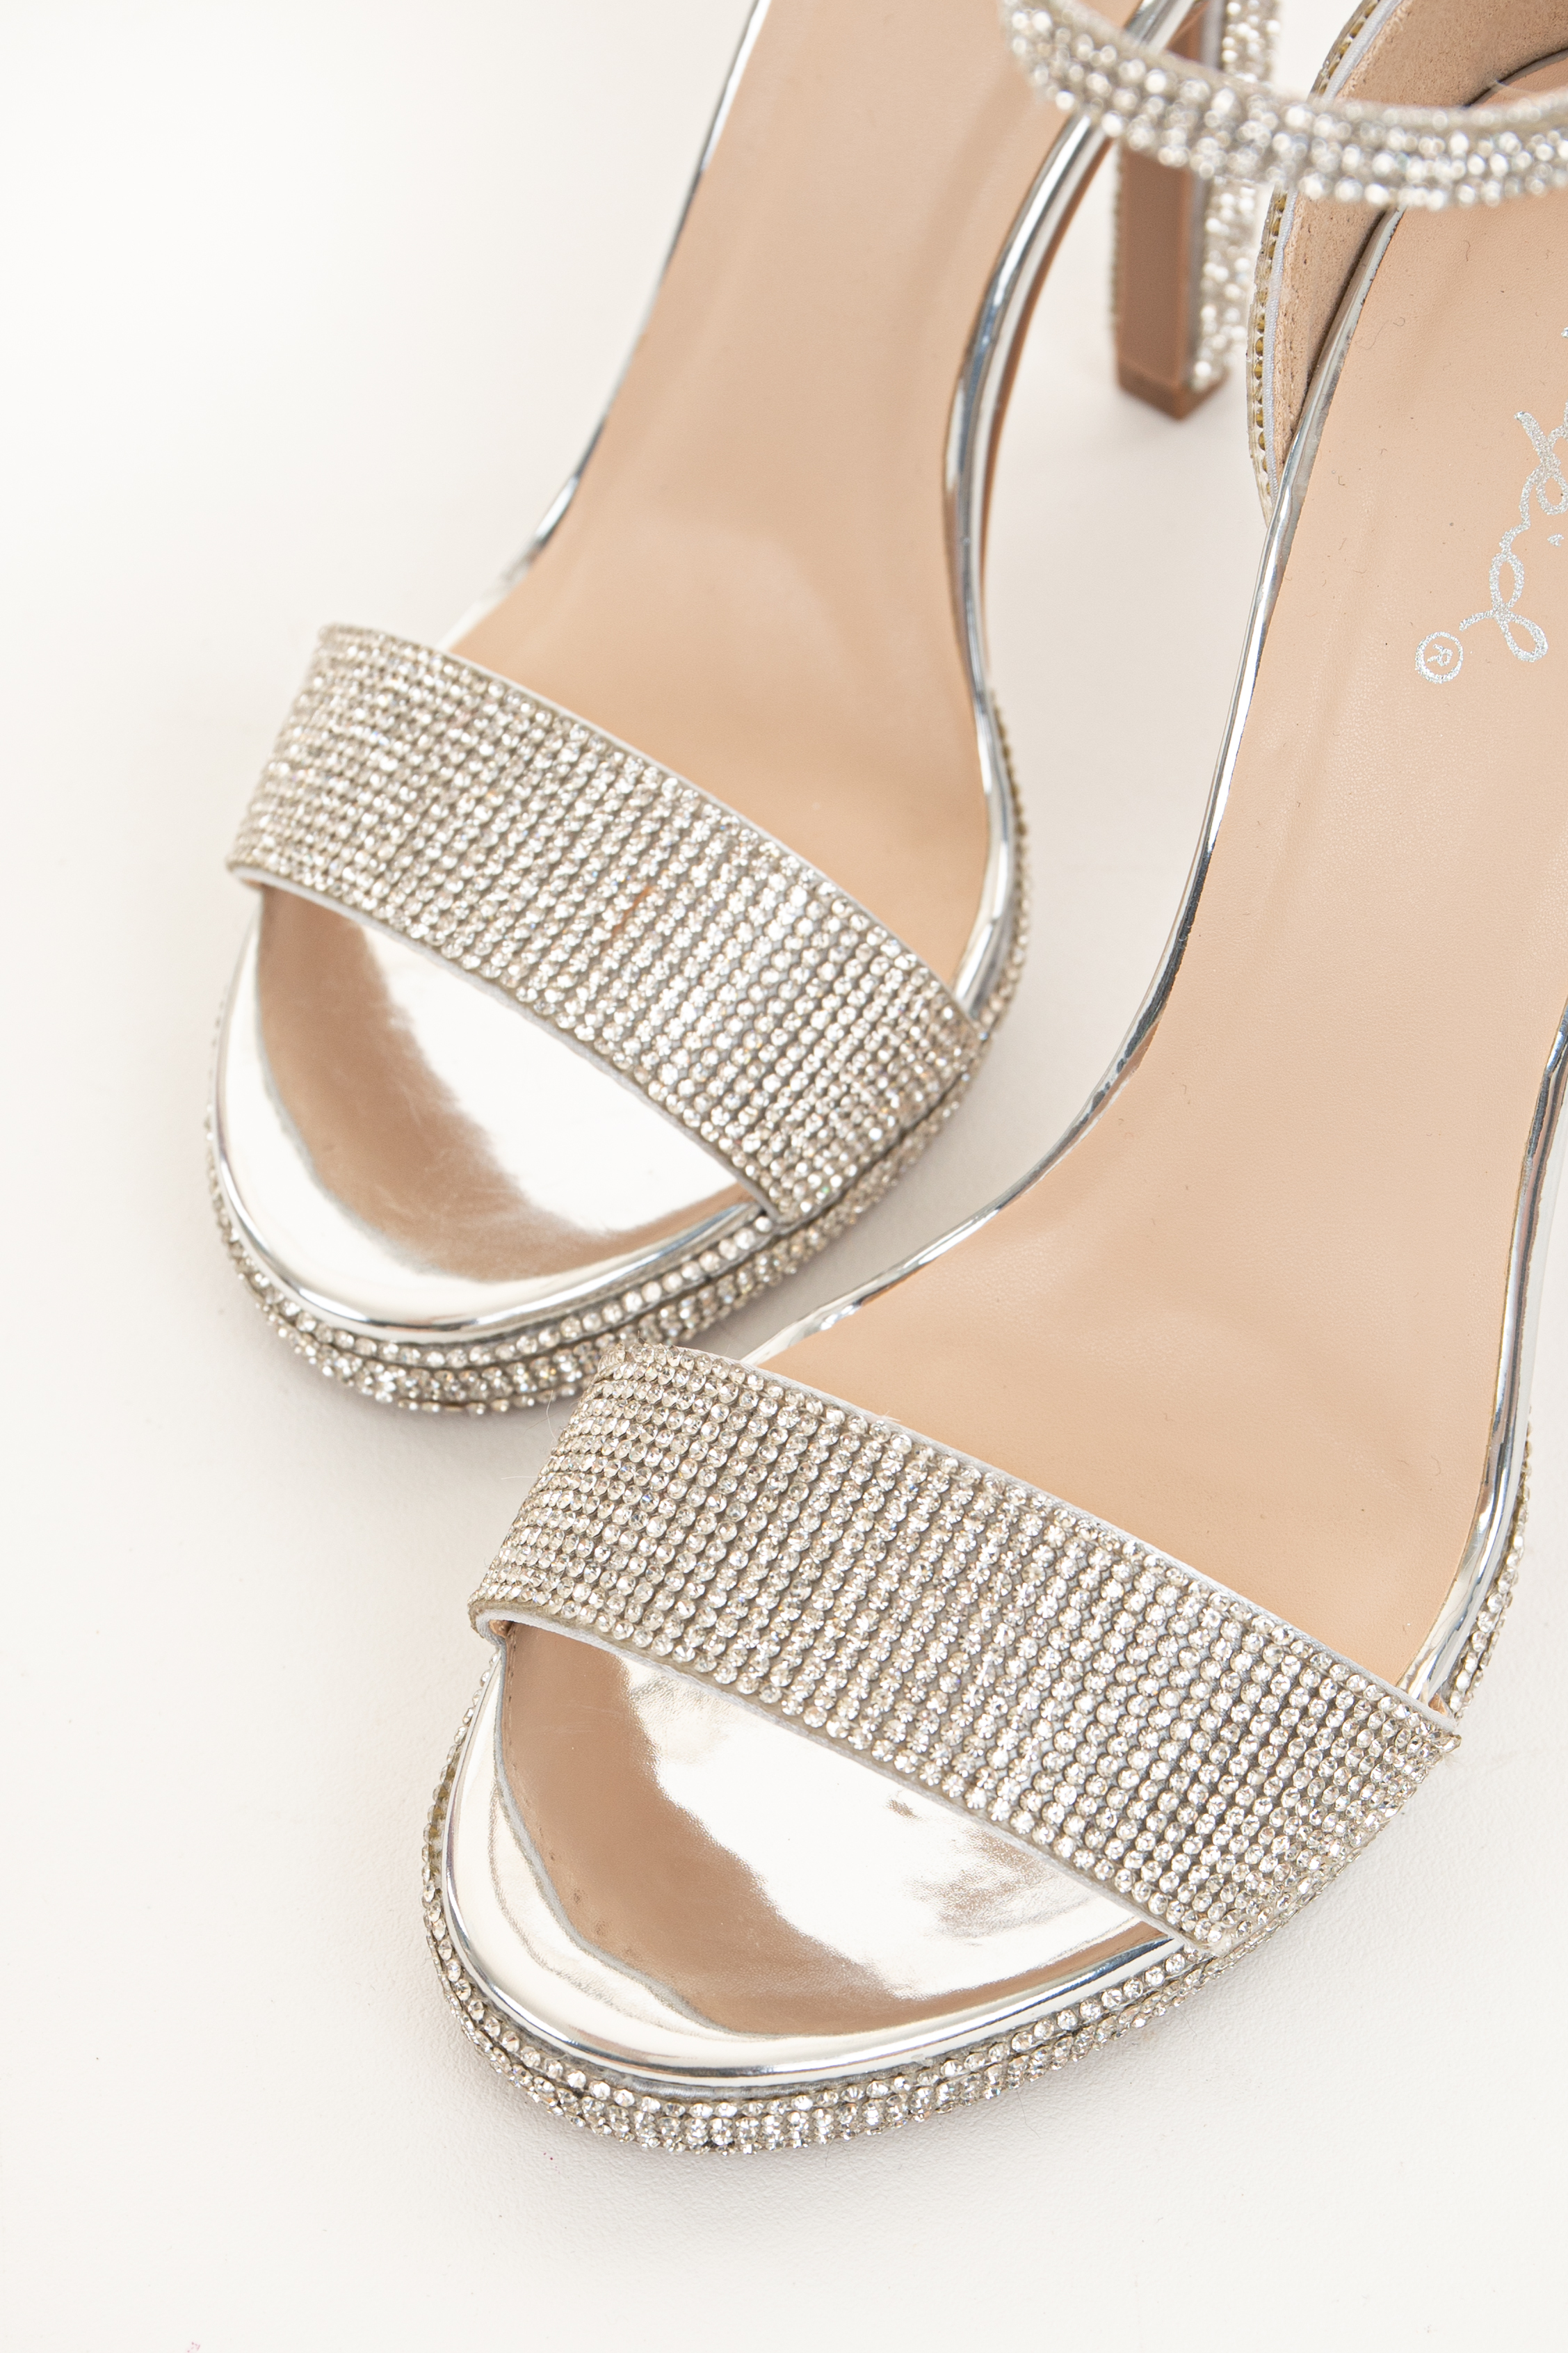 Silver Rhinestone Open Toe Heels with One Strap and Buckle